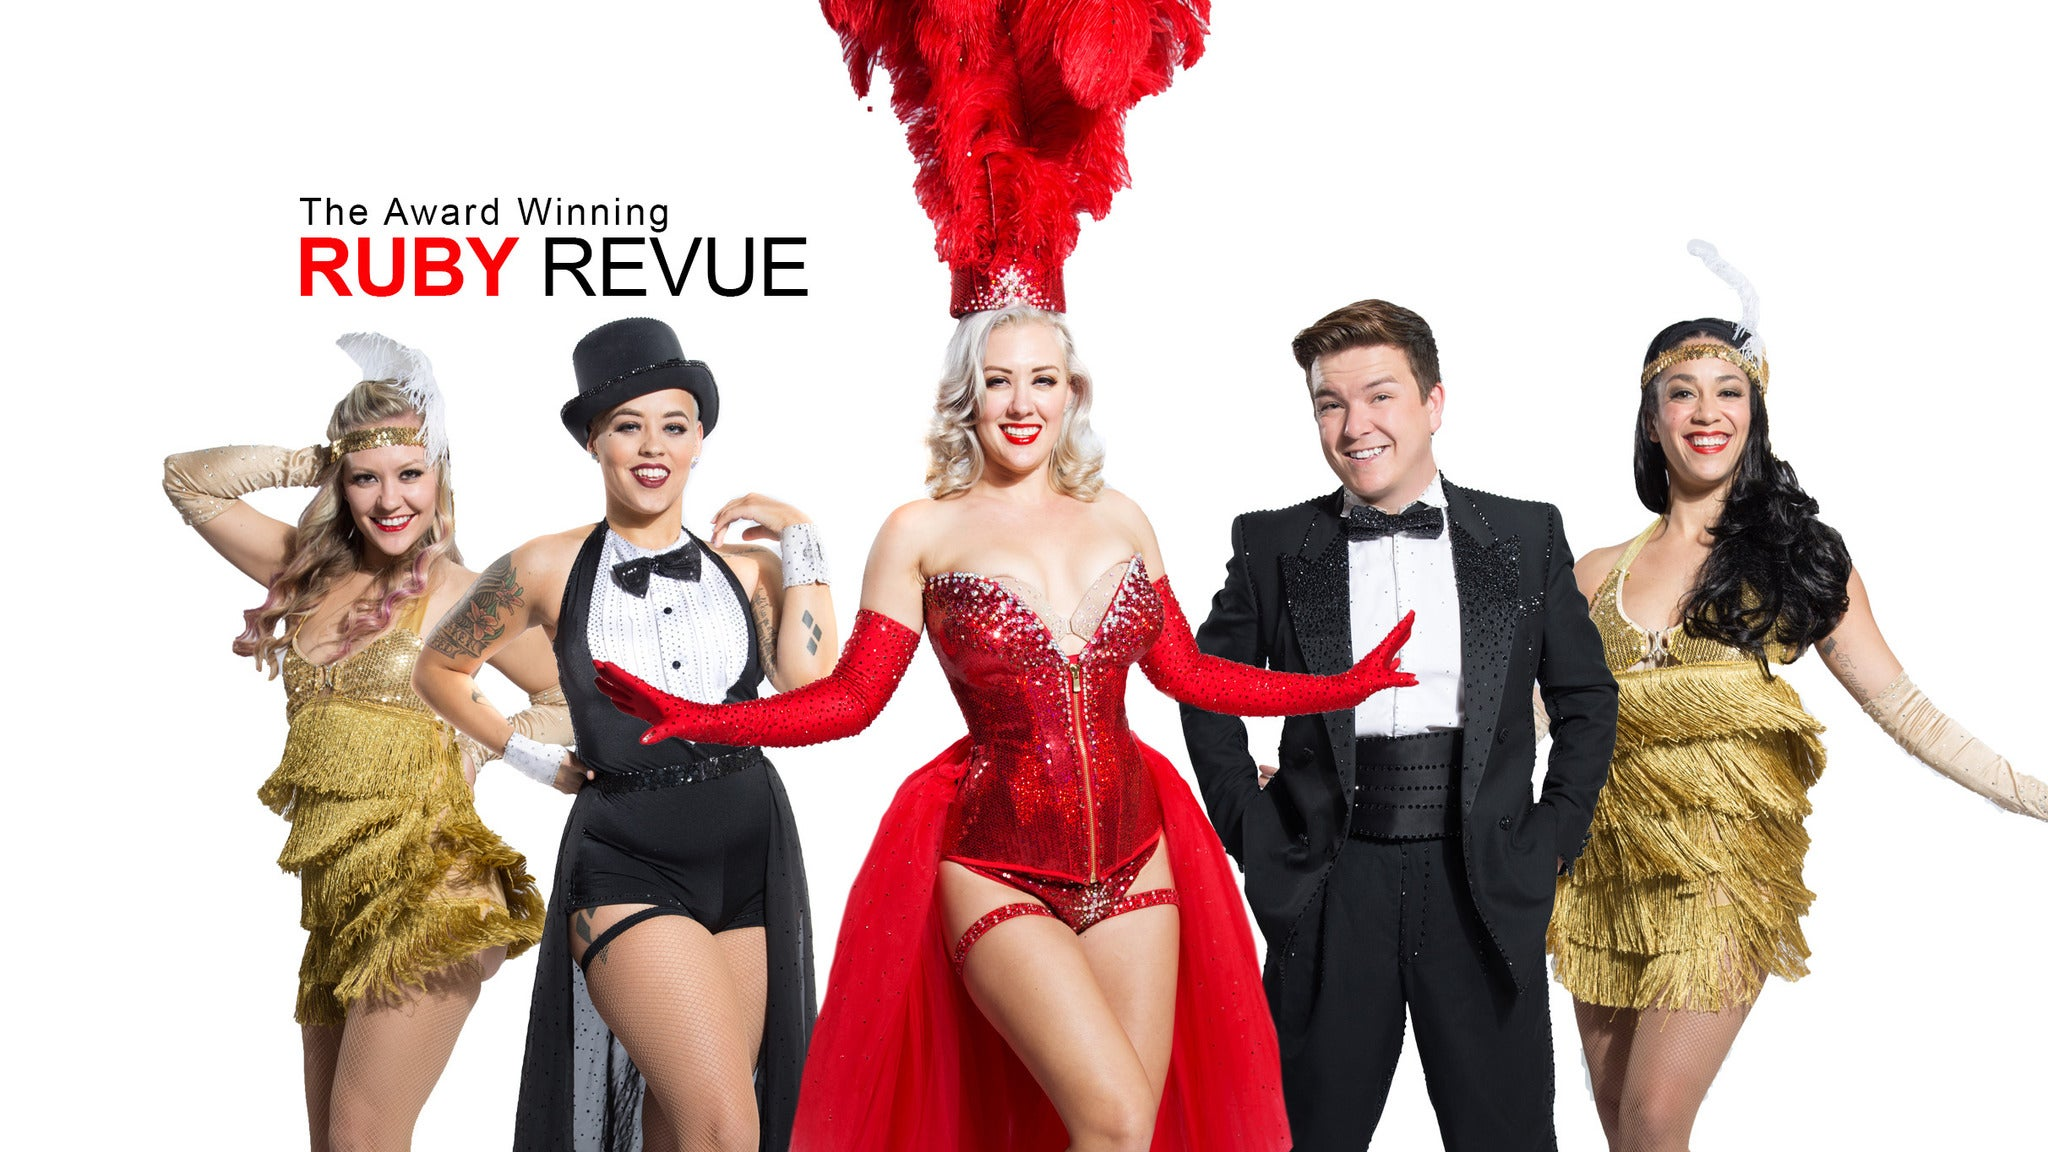 The Ruby Revue Burlesque Show